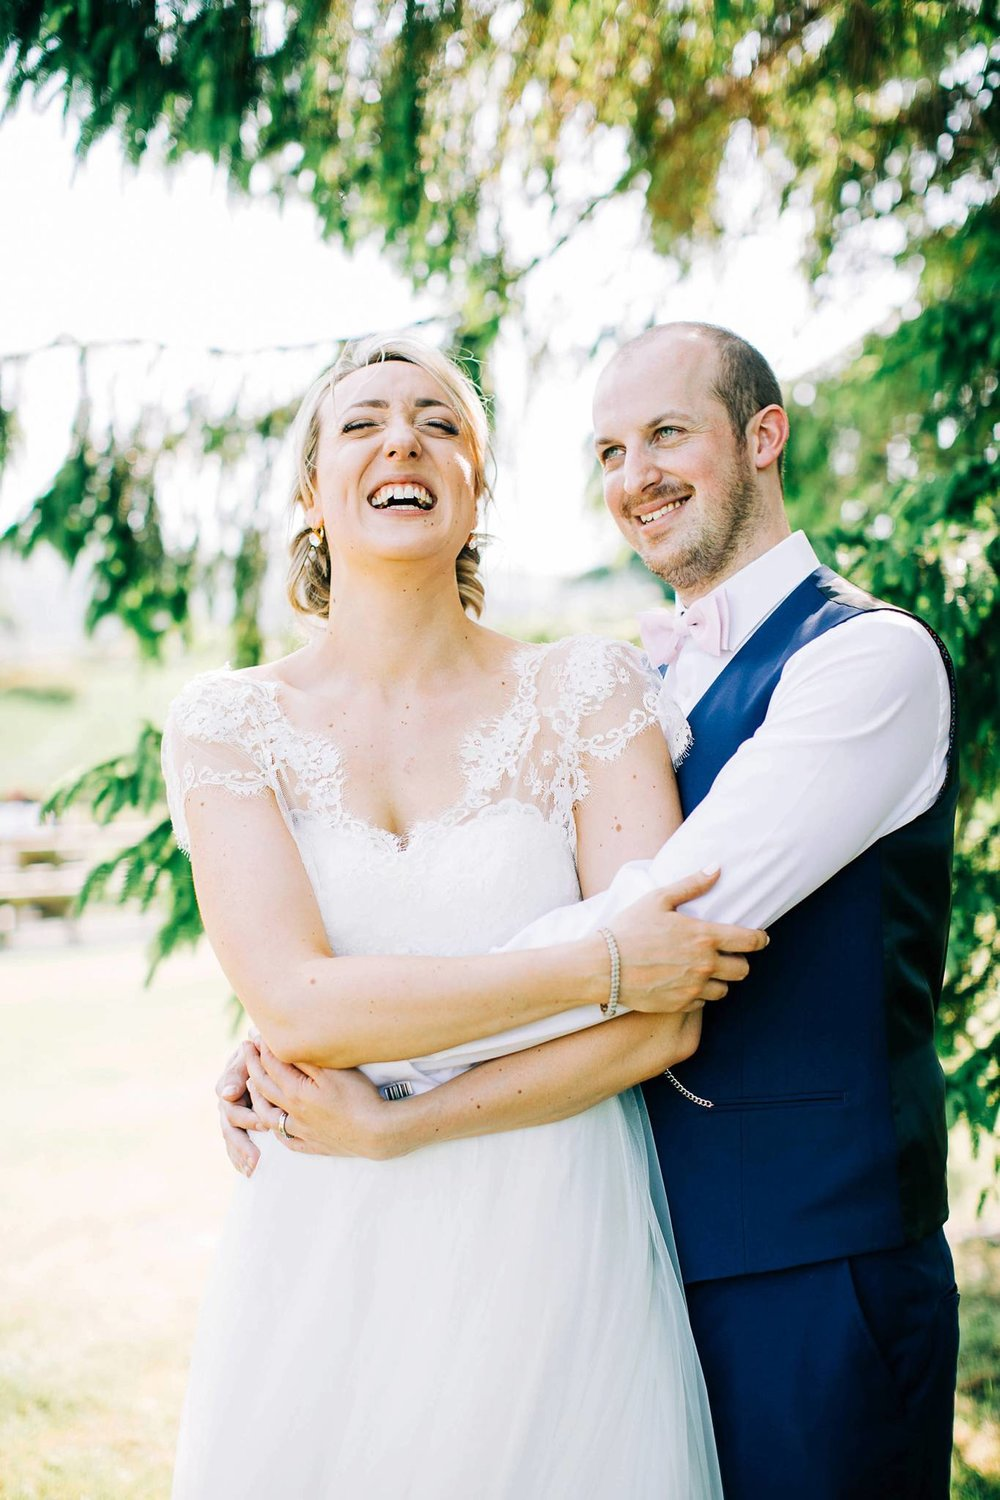 Natural wedding photography Manchester - Clare Robinson Photography_0009.jpg